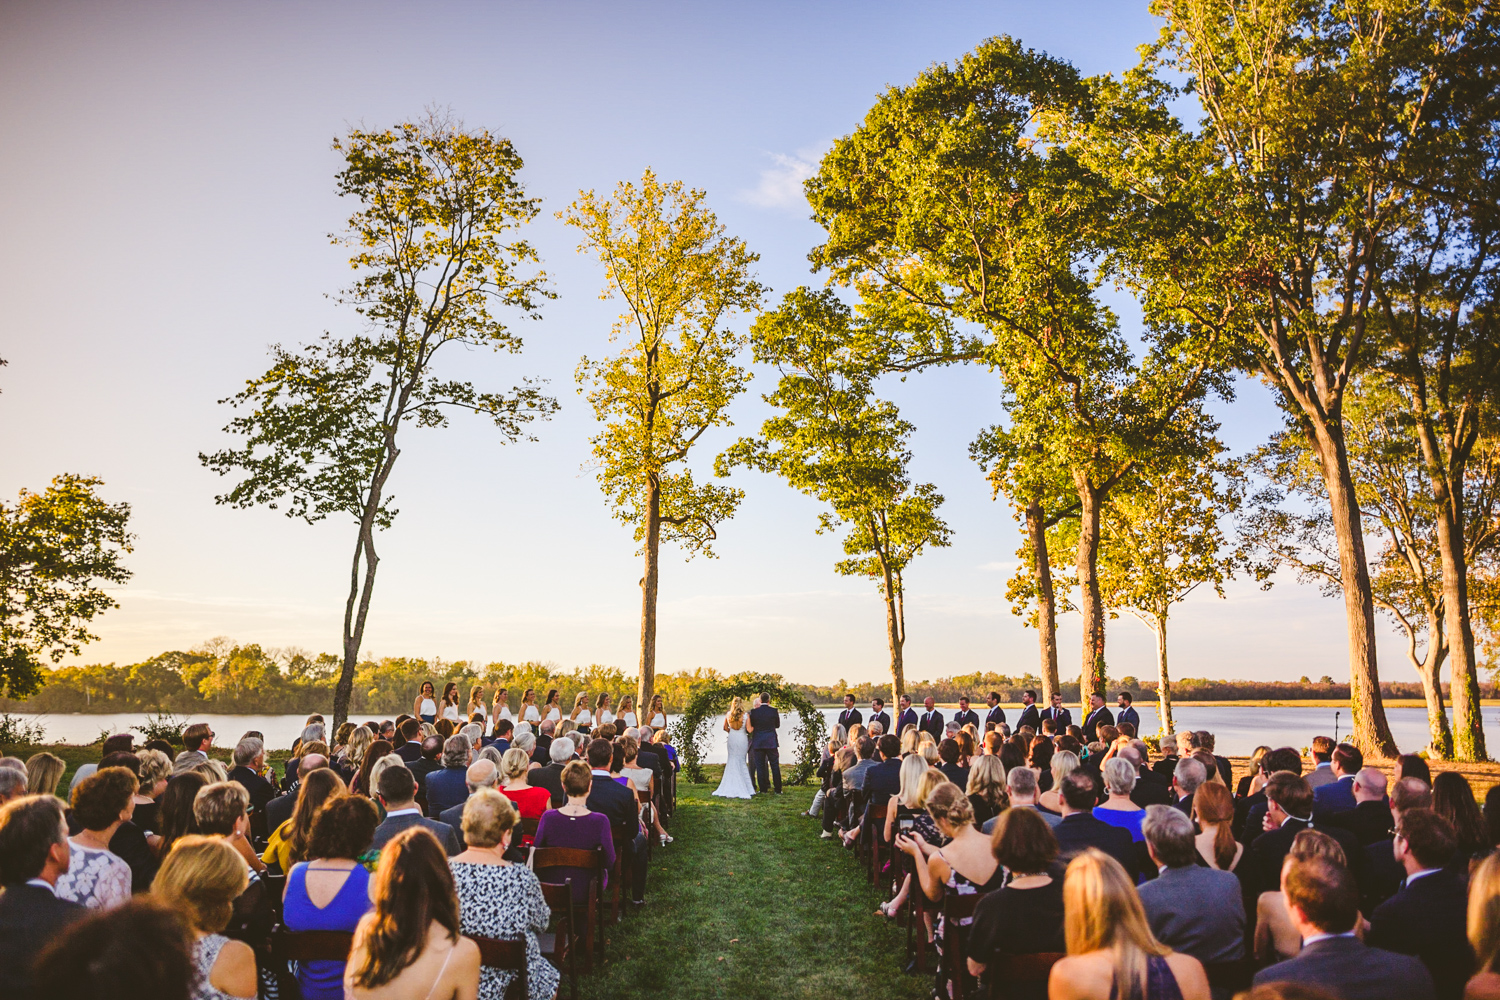 009 - gorgeous wedding at upper shirley vineyards in richmond virginia.jpg